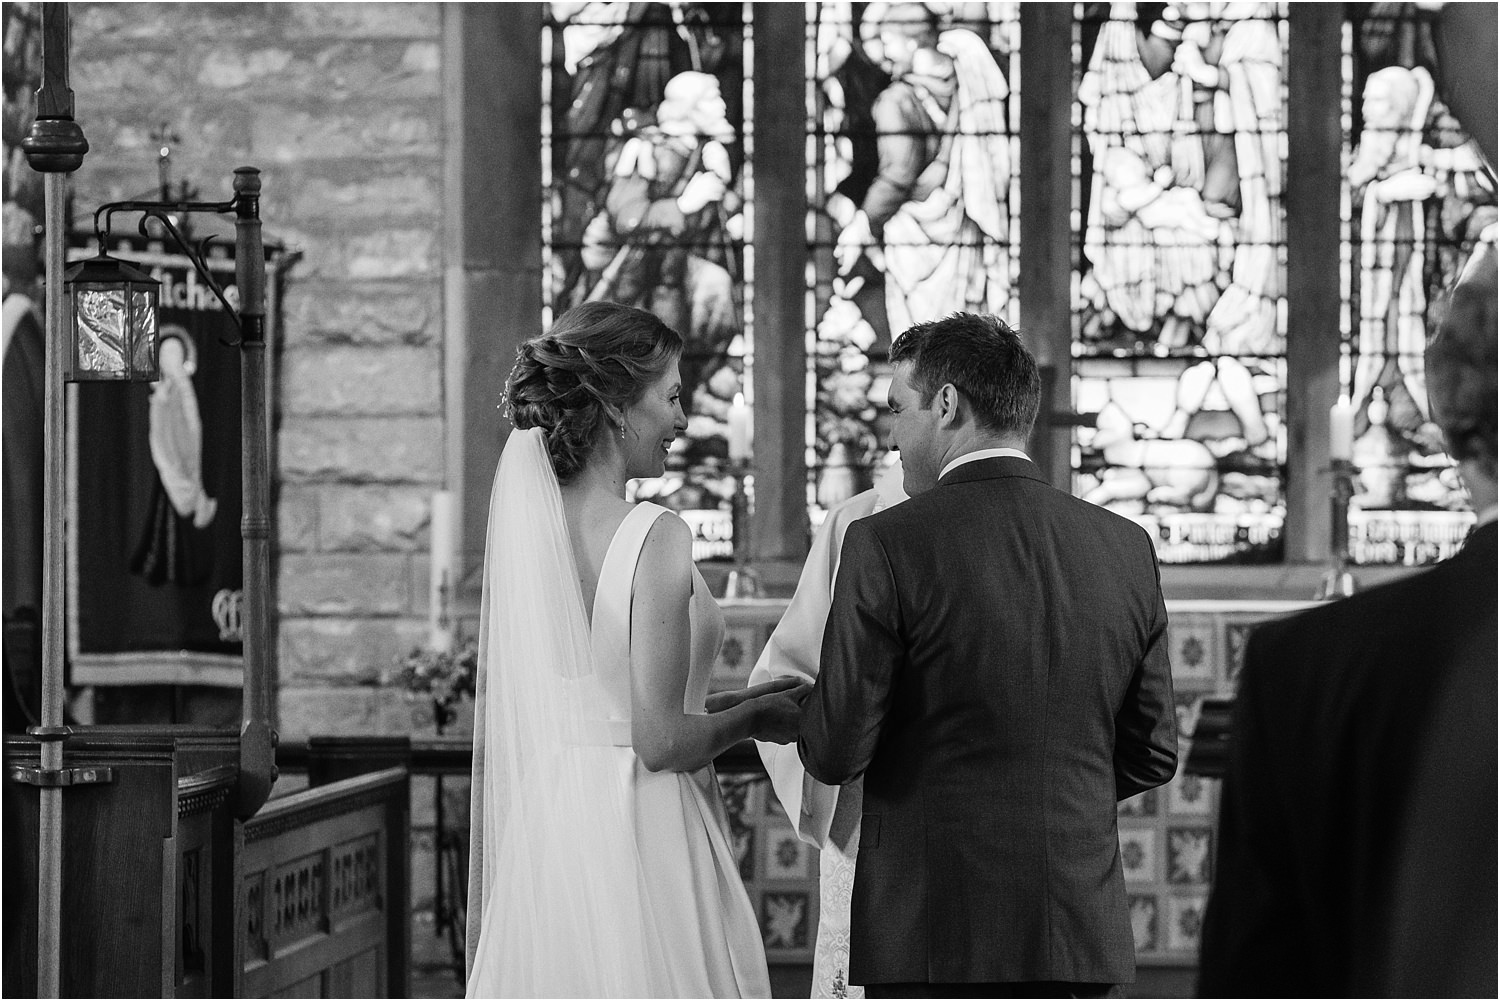 Bride and groom exchange vows at the altar of rural Lancashire church